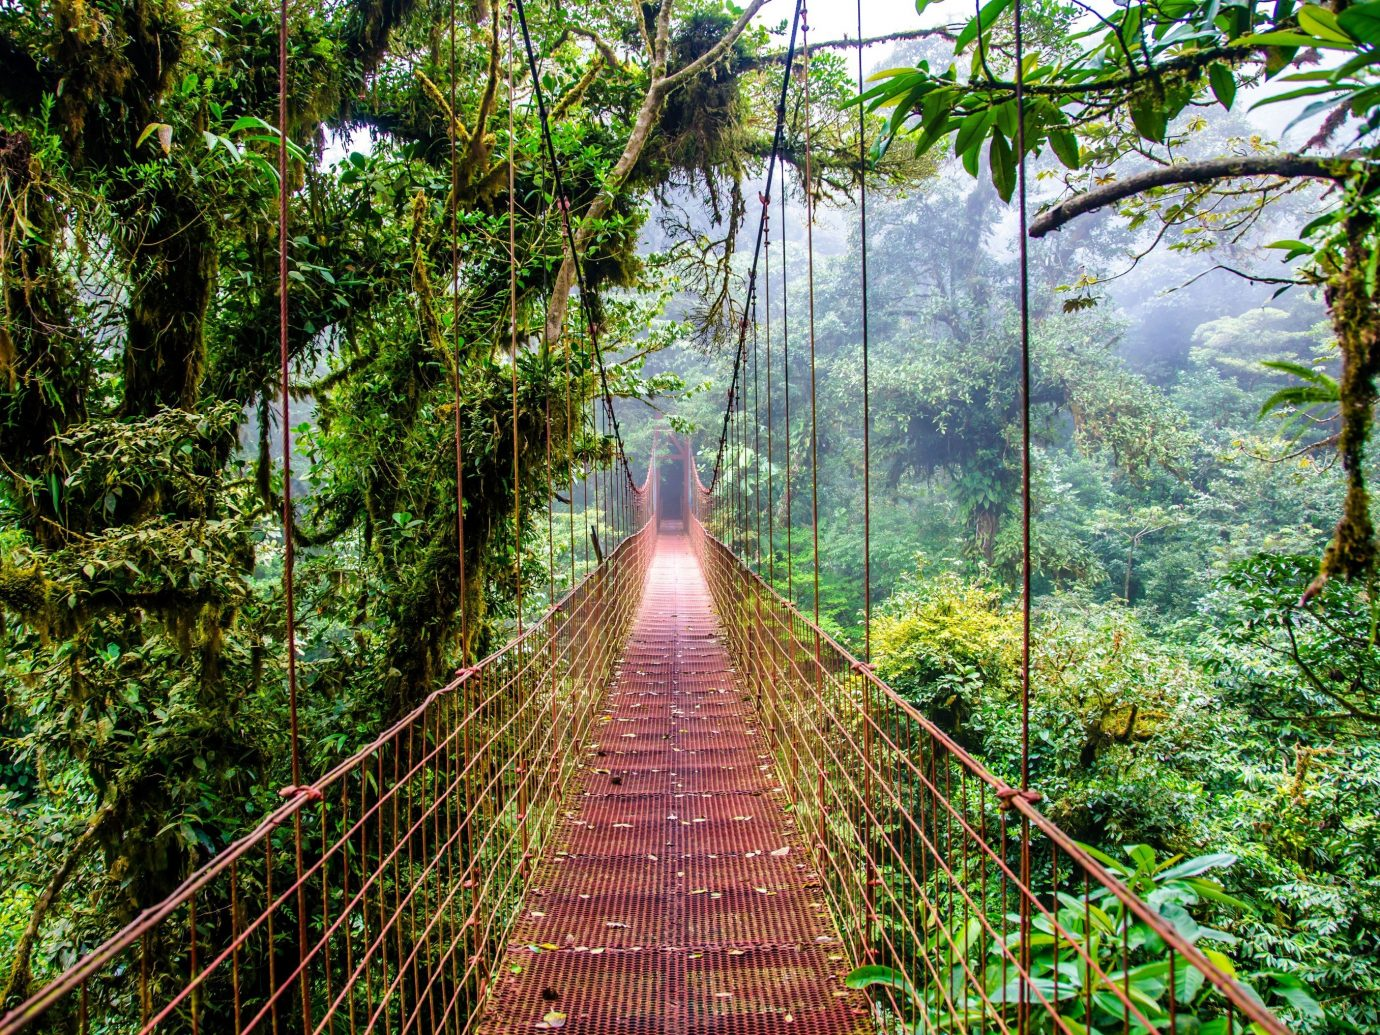 Trip Ideas tree outdoor habitat building bridge vegetation Nature rainforest natural environment Forest old growth forest botany Jungle woodland tropics plantation wooded surrounded lush